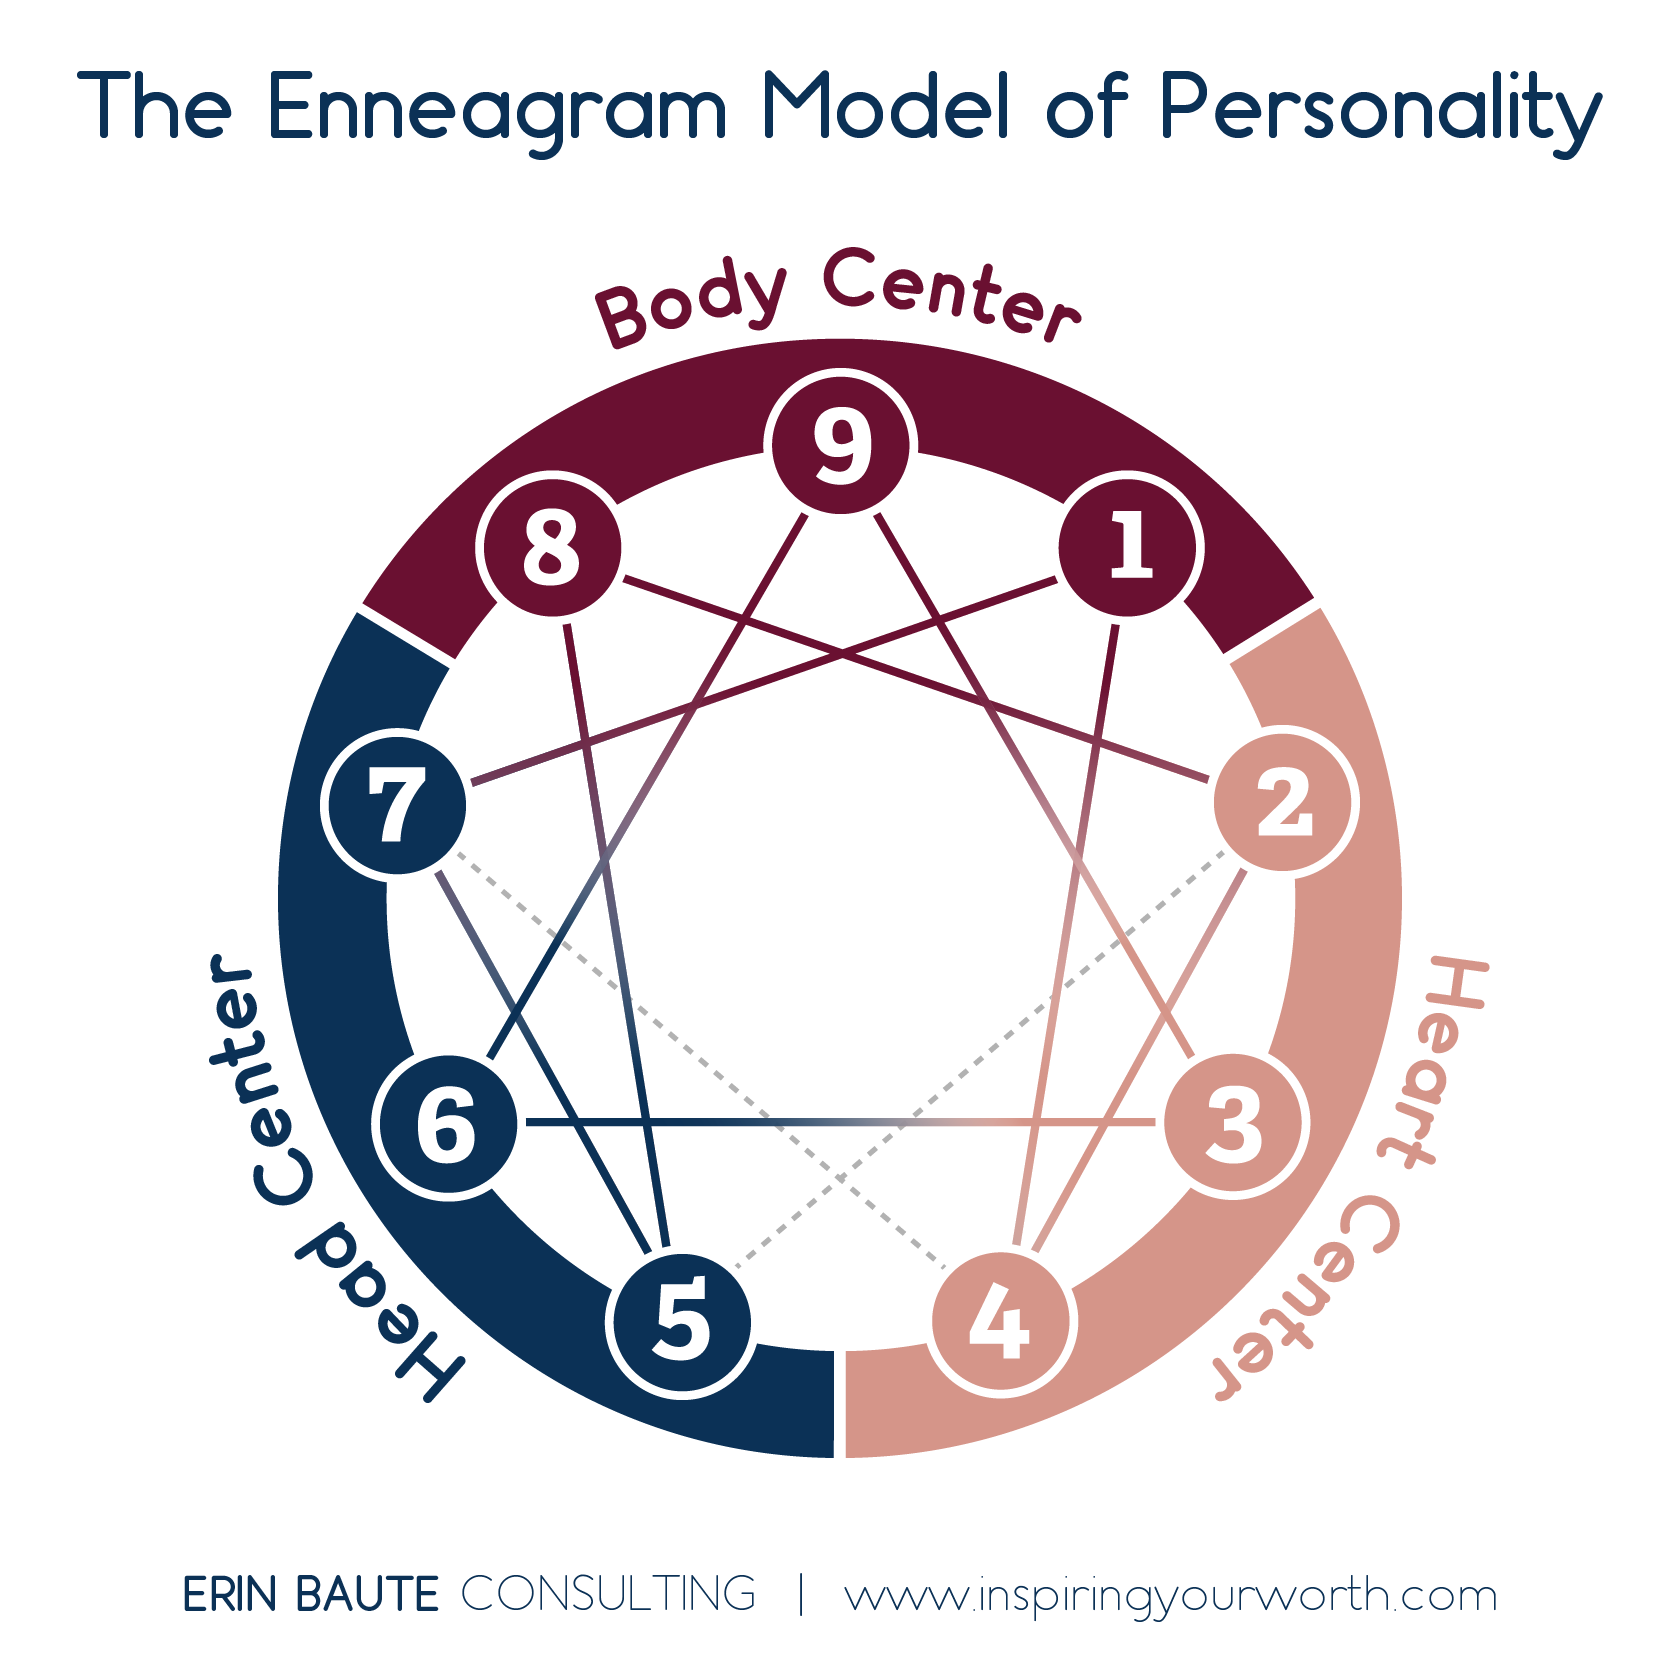 EBaute_Enneagram Model-2_Labeled_web-1_72dpi-01.png